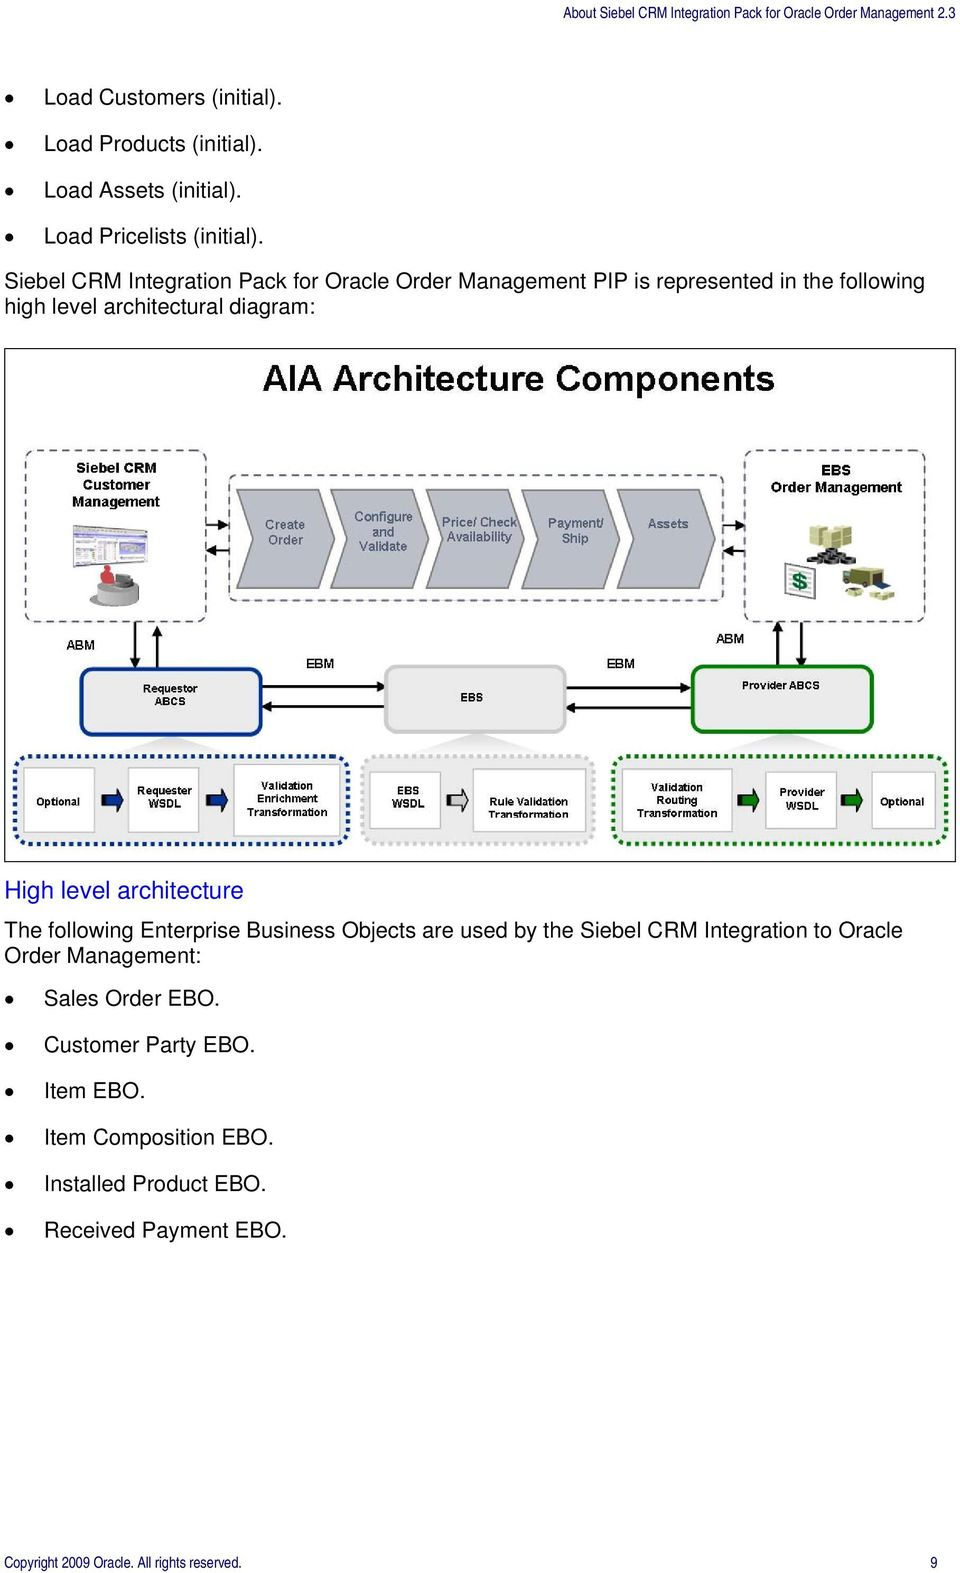 High level architecture The following Enterprise Business Objects are used by the Siebel CRM Integration to Oracle Order